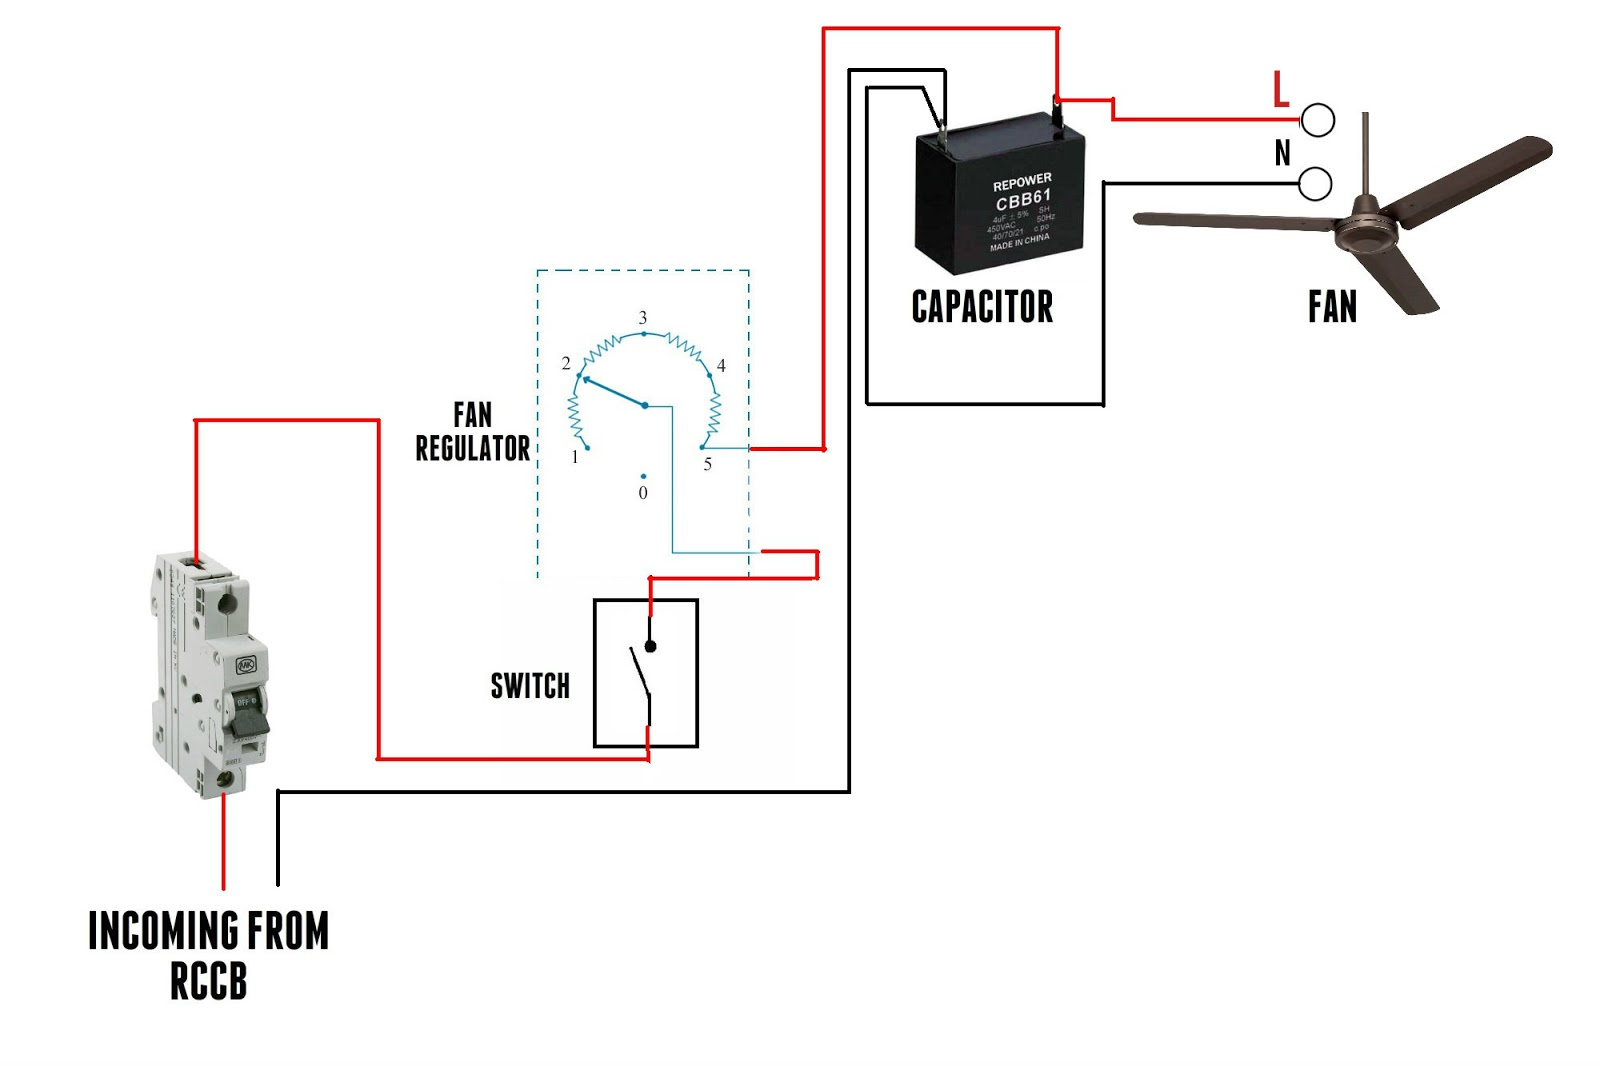 hight resolution of there s a capacitor for the fan because it will stabilize voltage and the power factor after connect to the capacitor it connect to the regulator to change